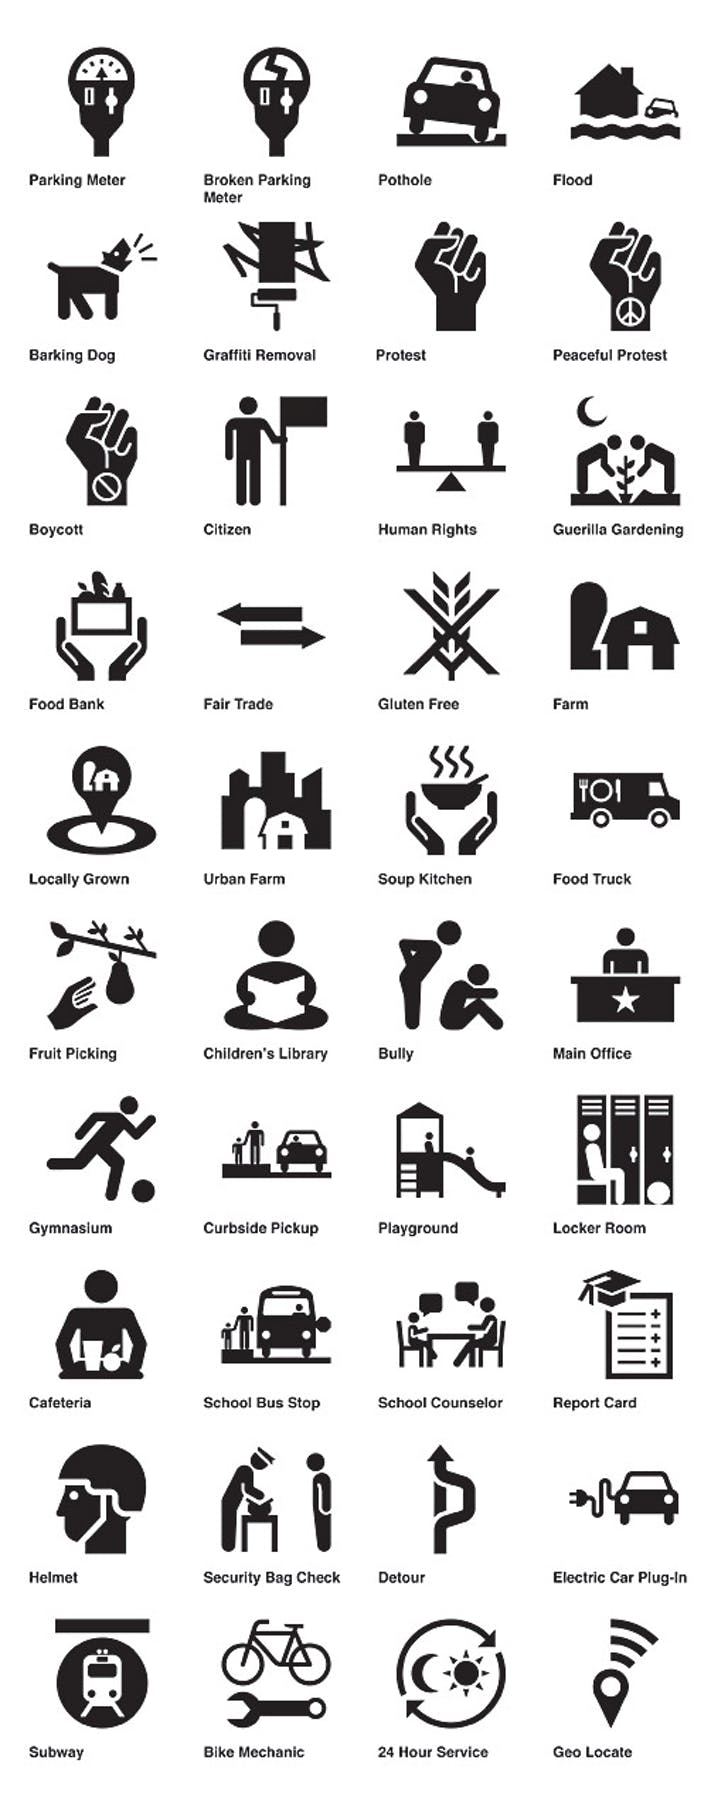 2011 Design Milestone: Civic Symbol Suite by Code for America with The Noun Project